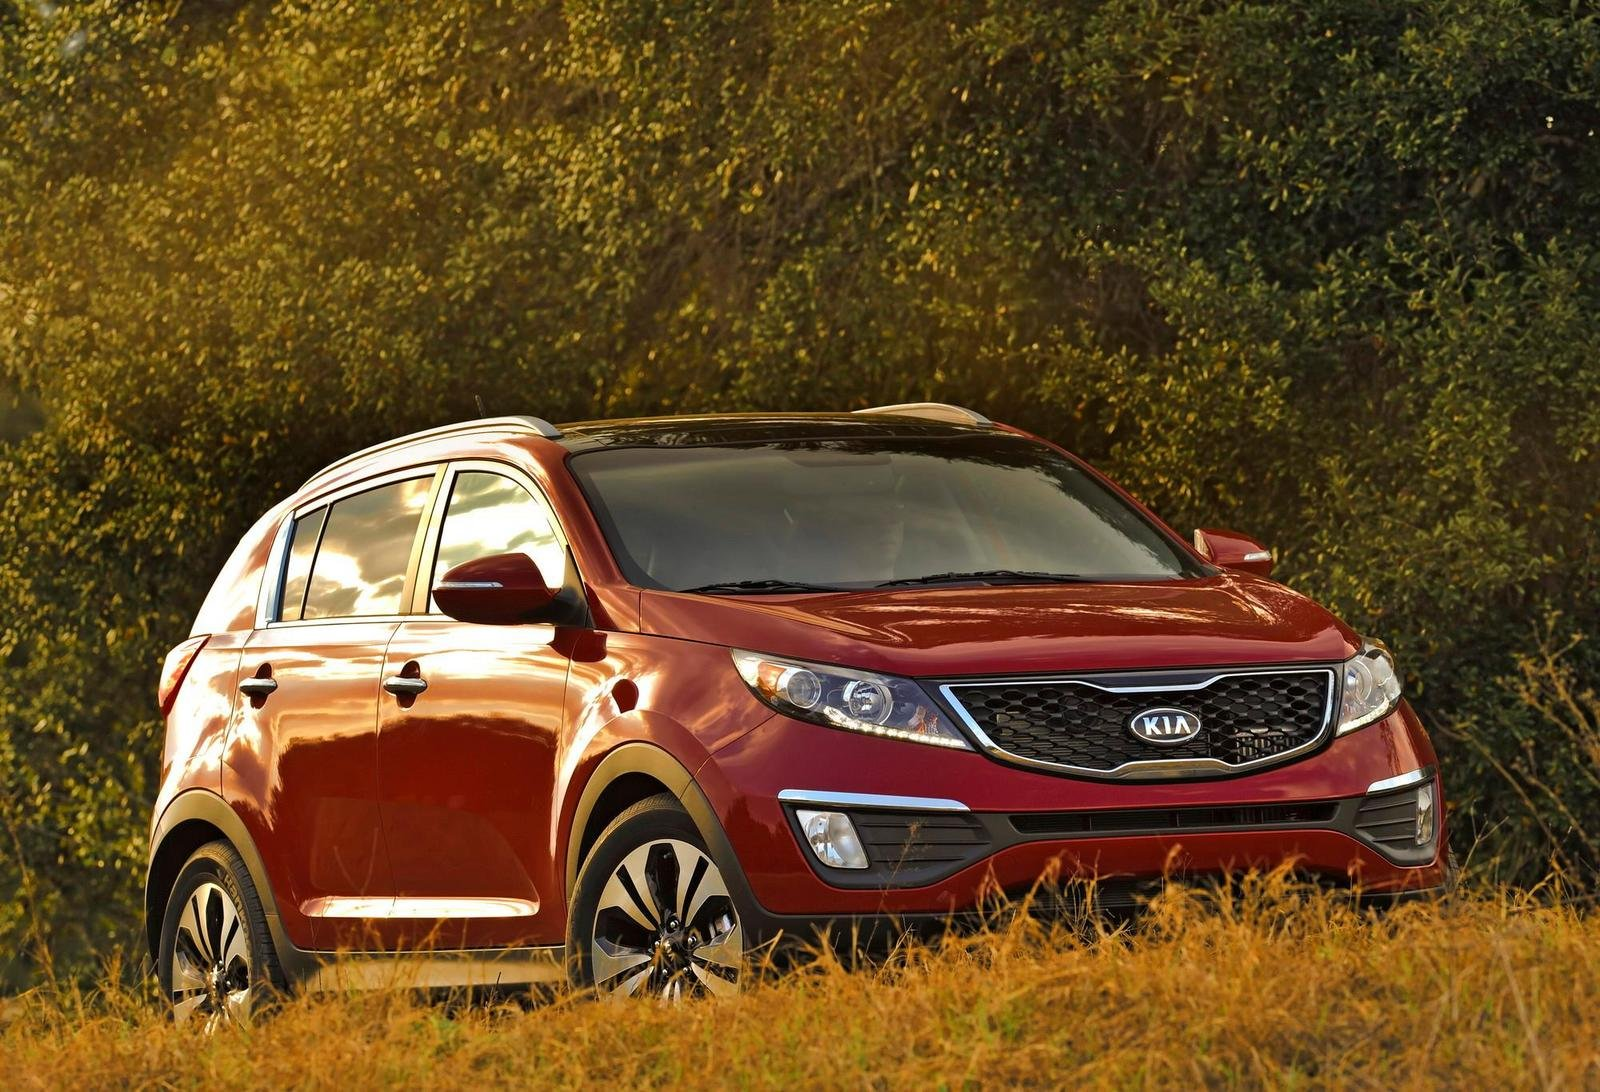 2011 kia sportage sx turbo picture 395153 car review top speed. Black Bedroom Furniture Sets. Home Design Ideas